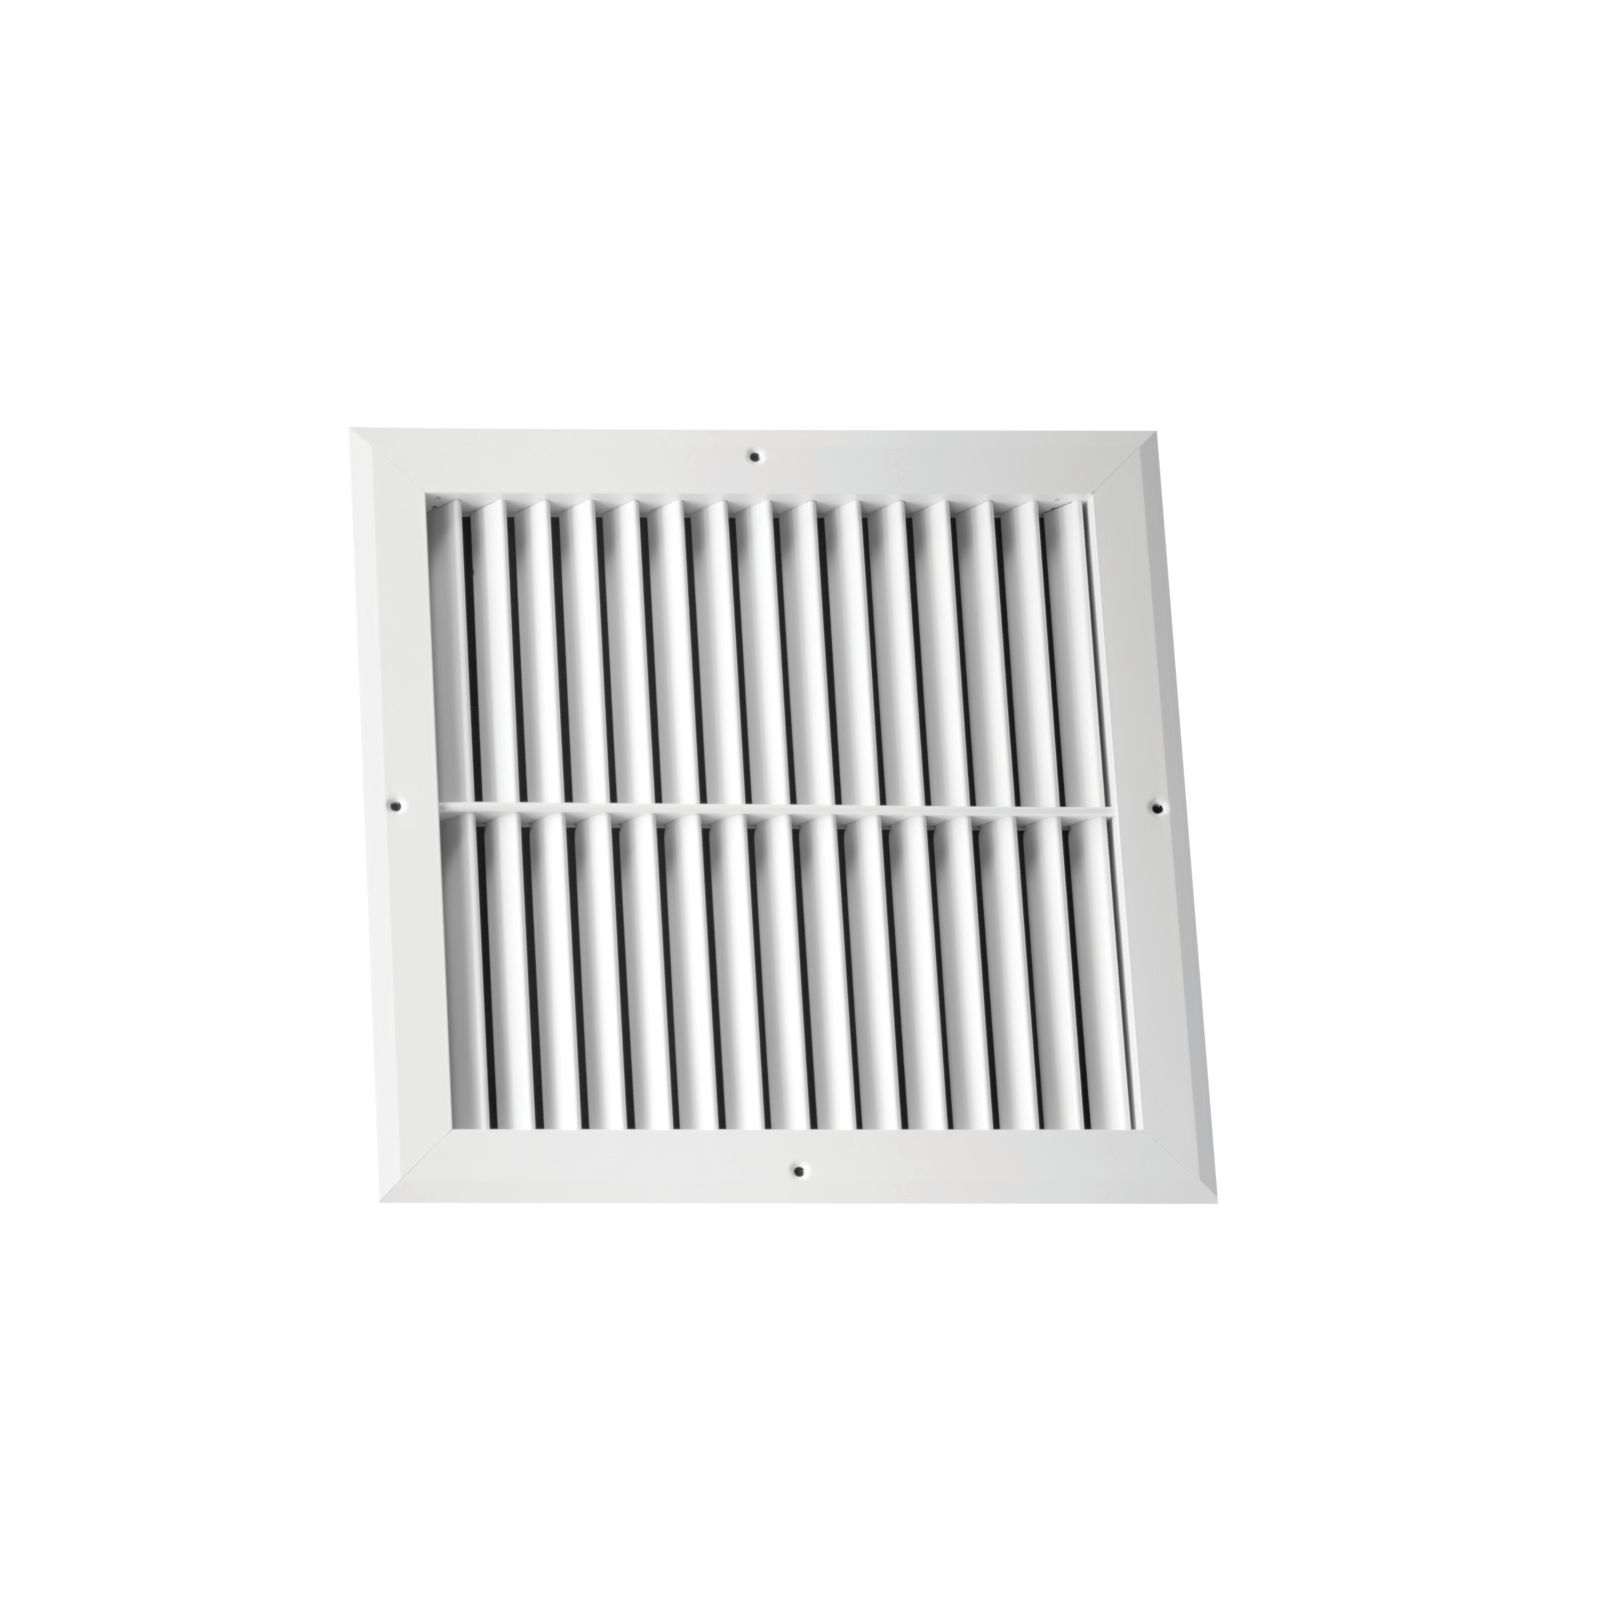 "Hart & Cooley 0W8292 - Aluminum Return Air Filter Grille, 45-Degree Fixed Blade With Thumb Screws, White Finish, 30"" X 20"""